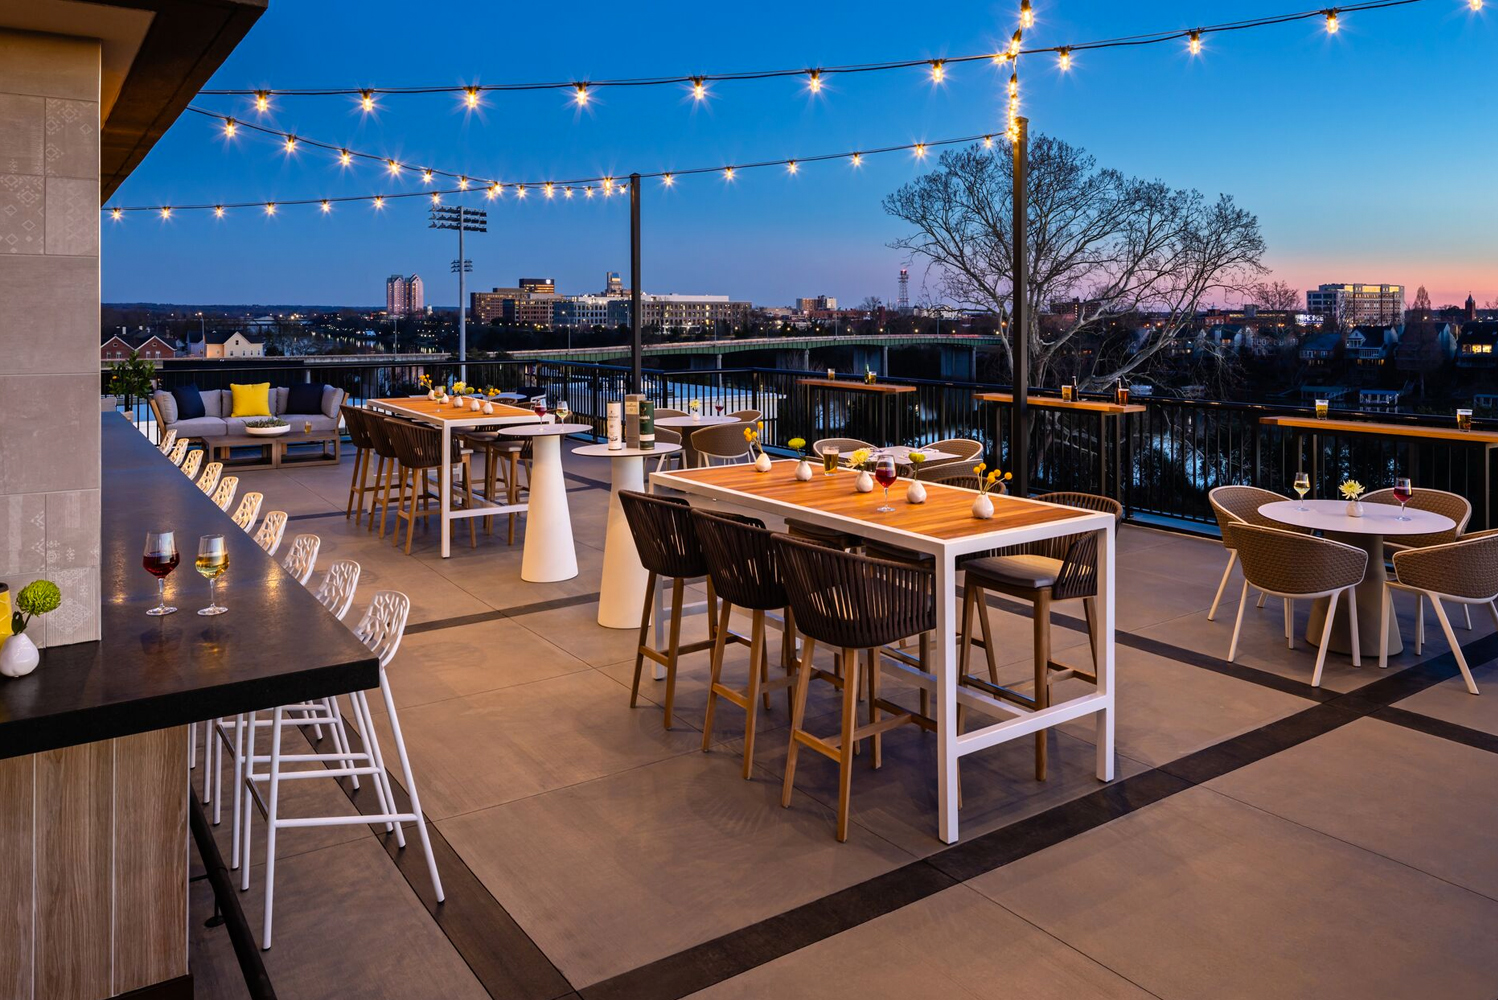 The property has a rooftop bar; 11,000 square feet of meeting space that includes a 5,400-square-foot ballroom; and 6,000 square feet of outdoor meeting and event space.